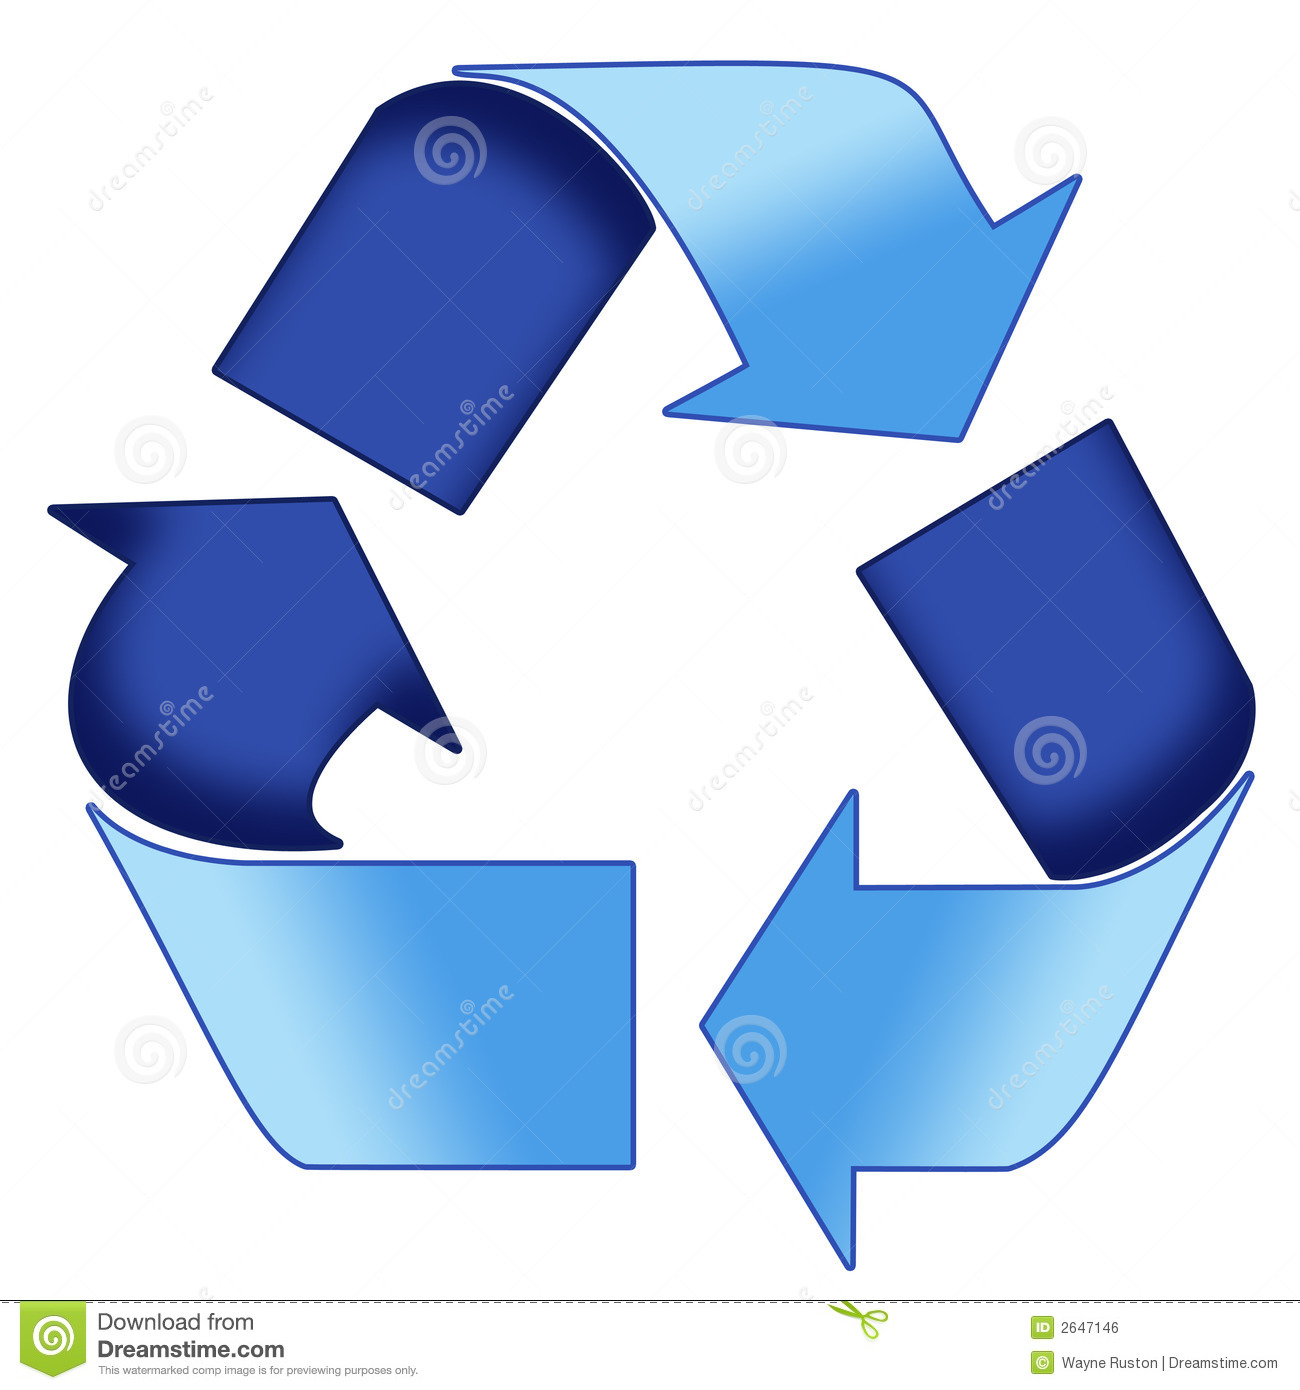 Blue Recycle Symbol Royalty Free Stock Image - Image: 2647146